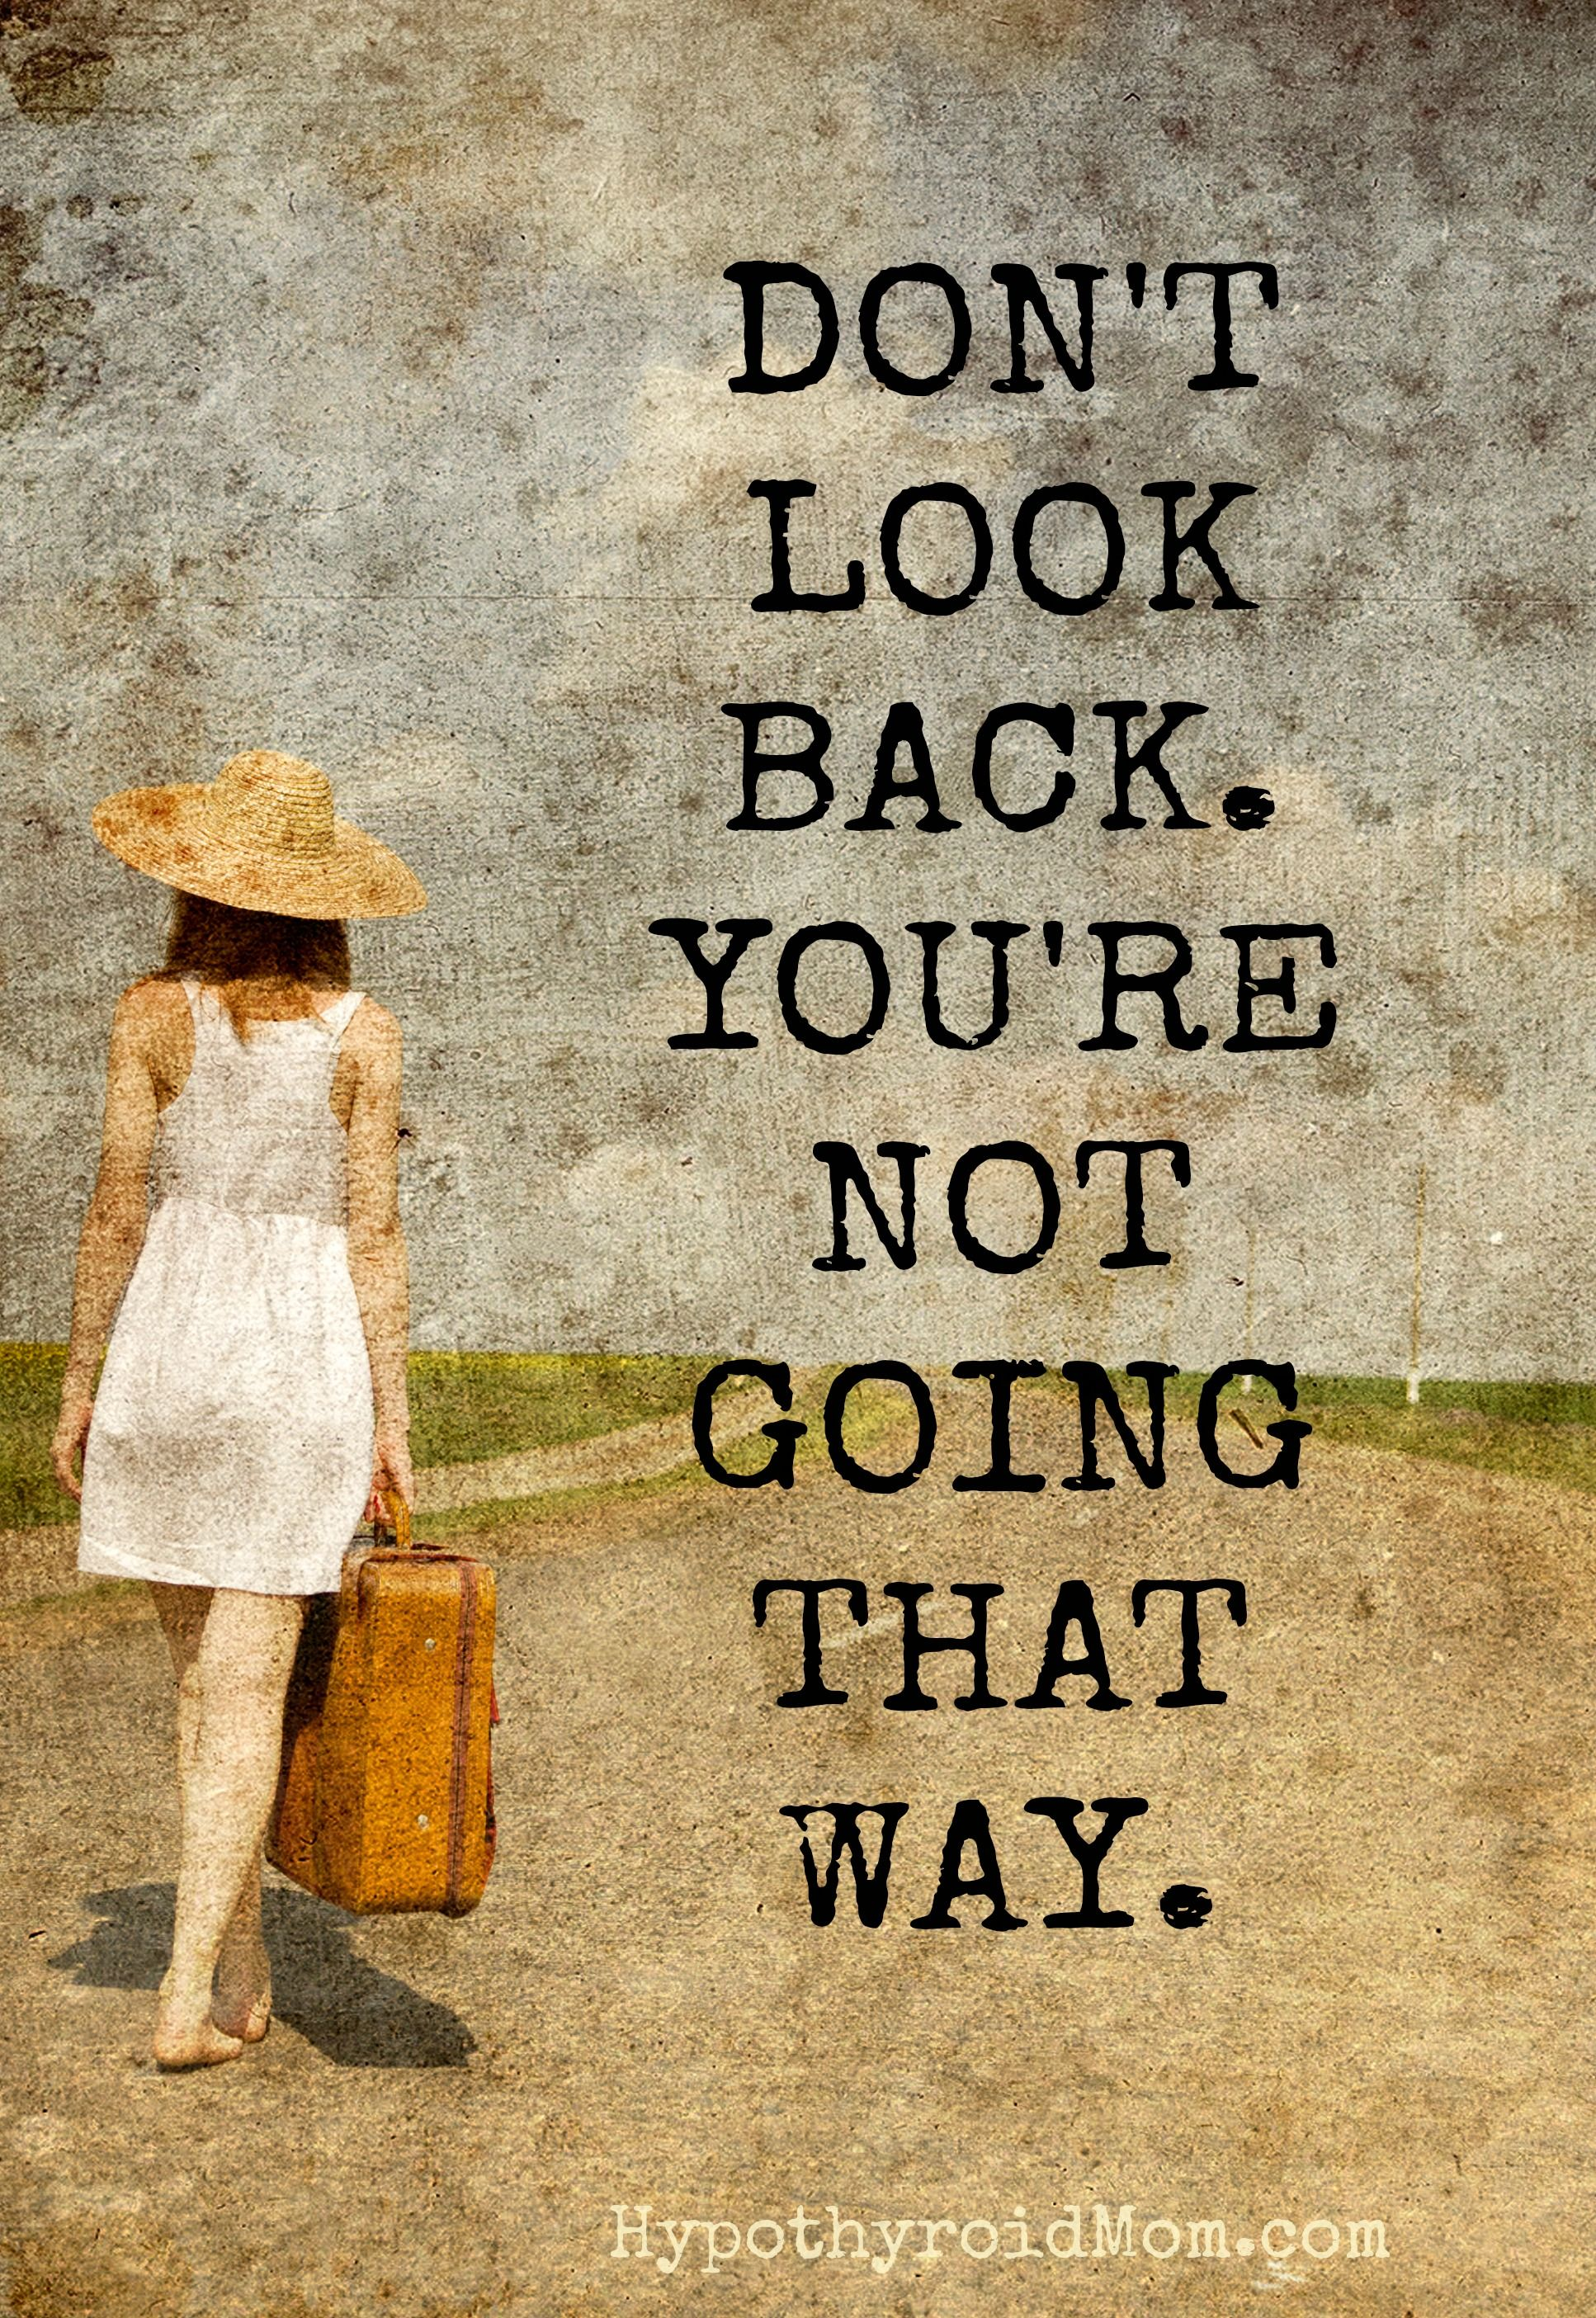 Don T Look Back You Re Not Going That Way Hypothyroidmom Motivation